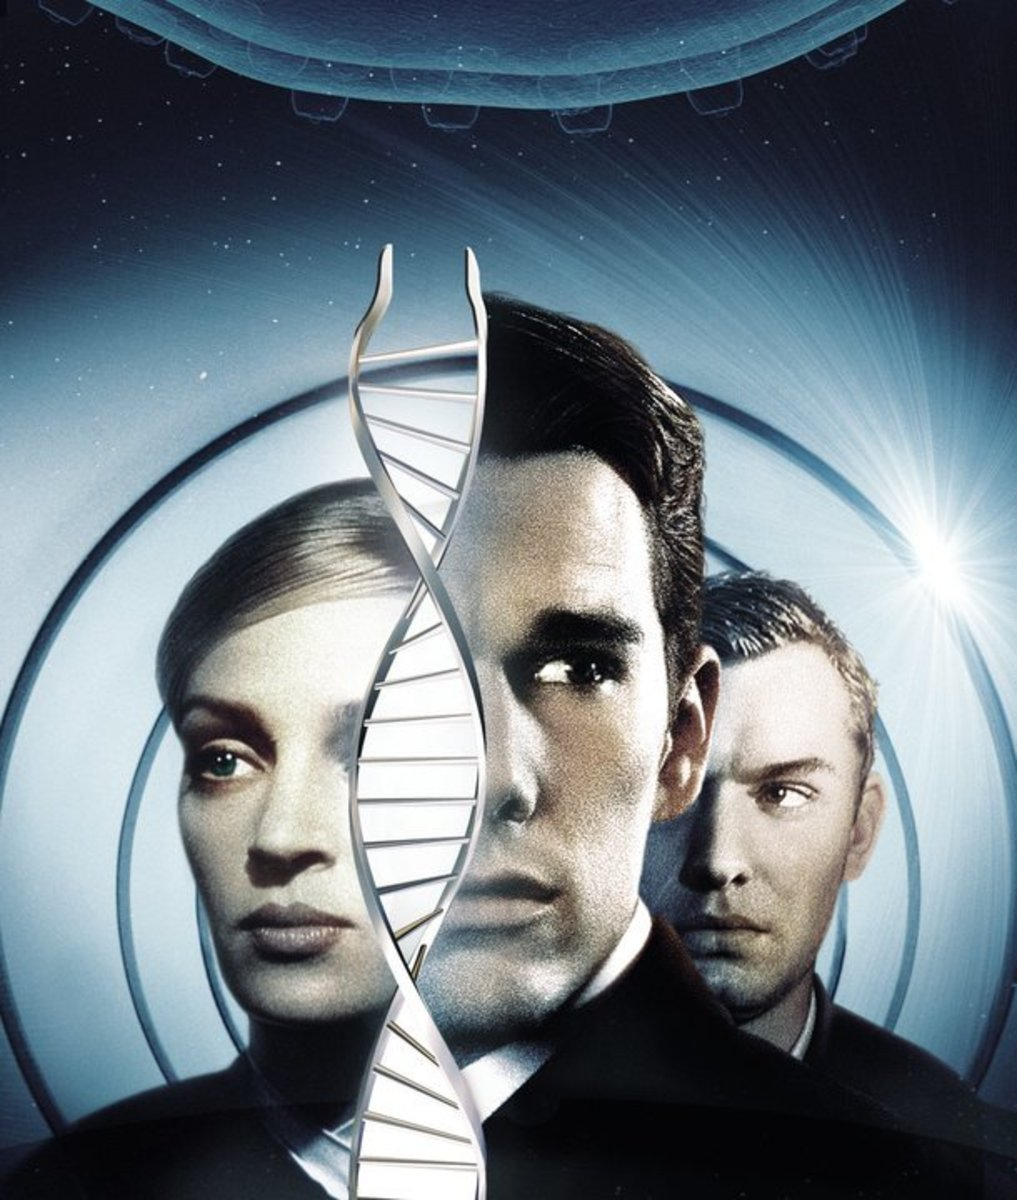 The movie GATTACA envisions a future world inhabited by genetically engineered people where those who aren't are considered invalid.